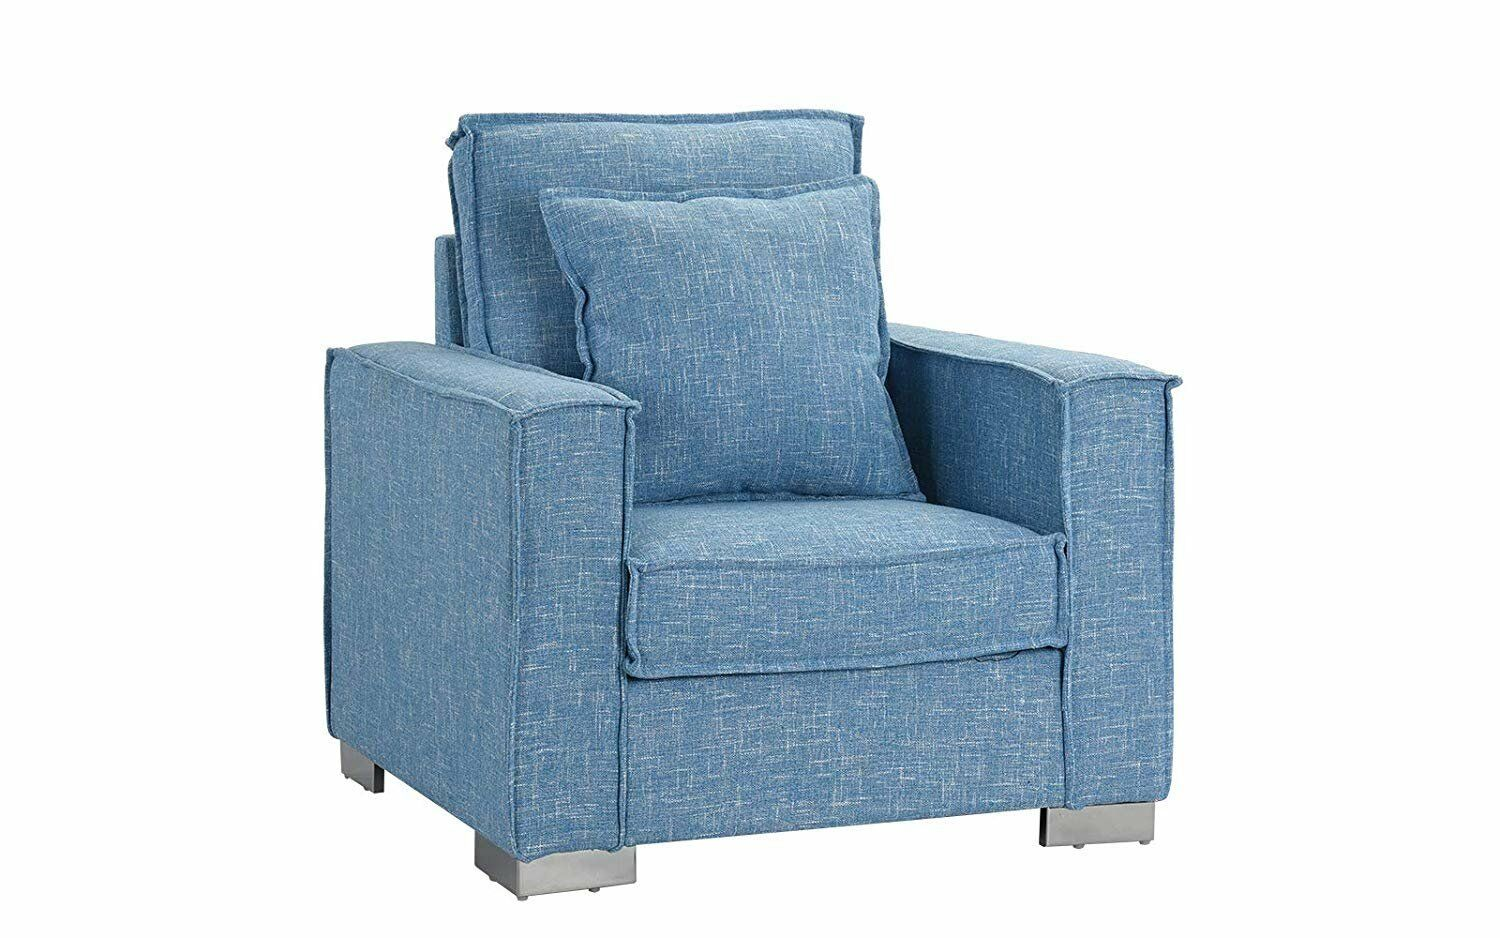 Modern Small Space Fabric Armchair Living Room Accent Chair Light Blue